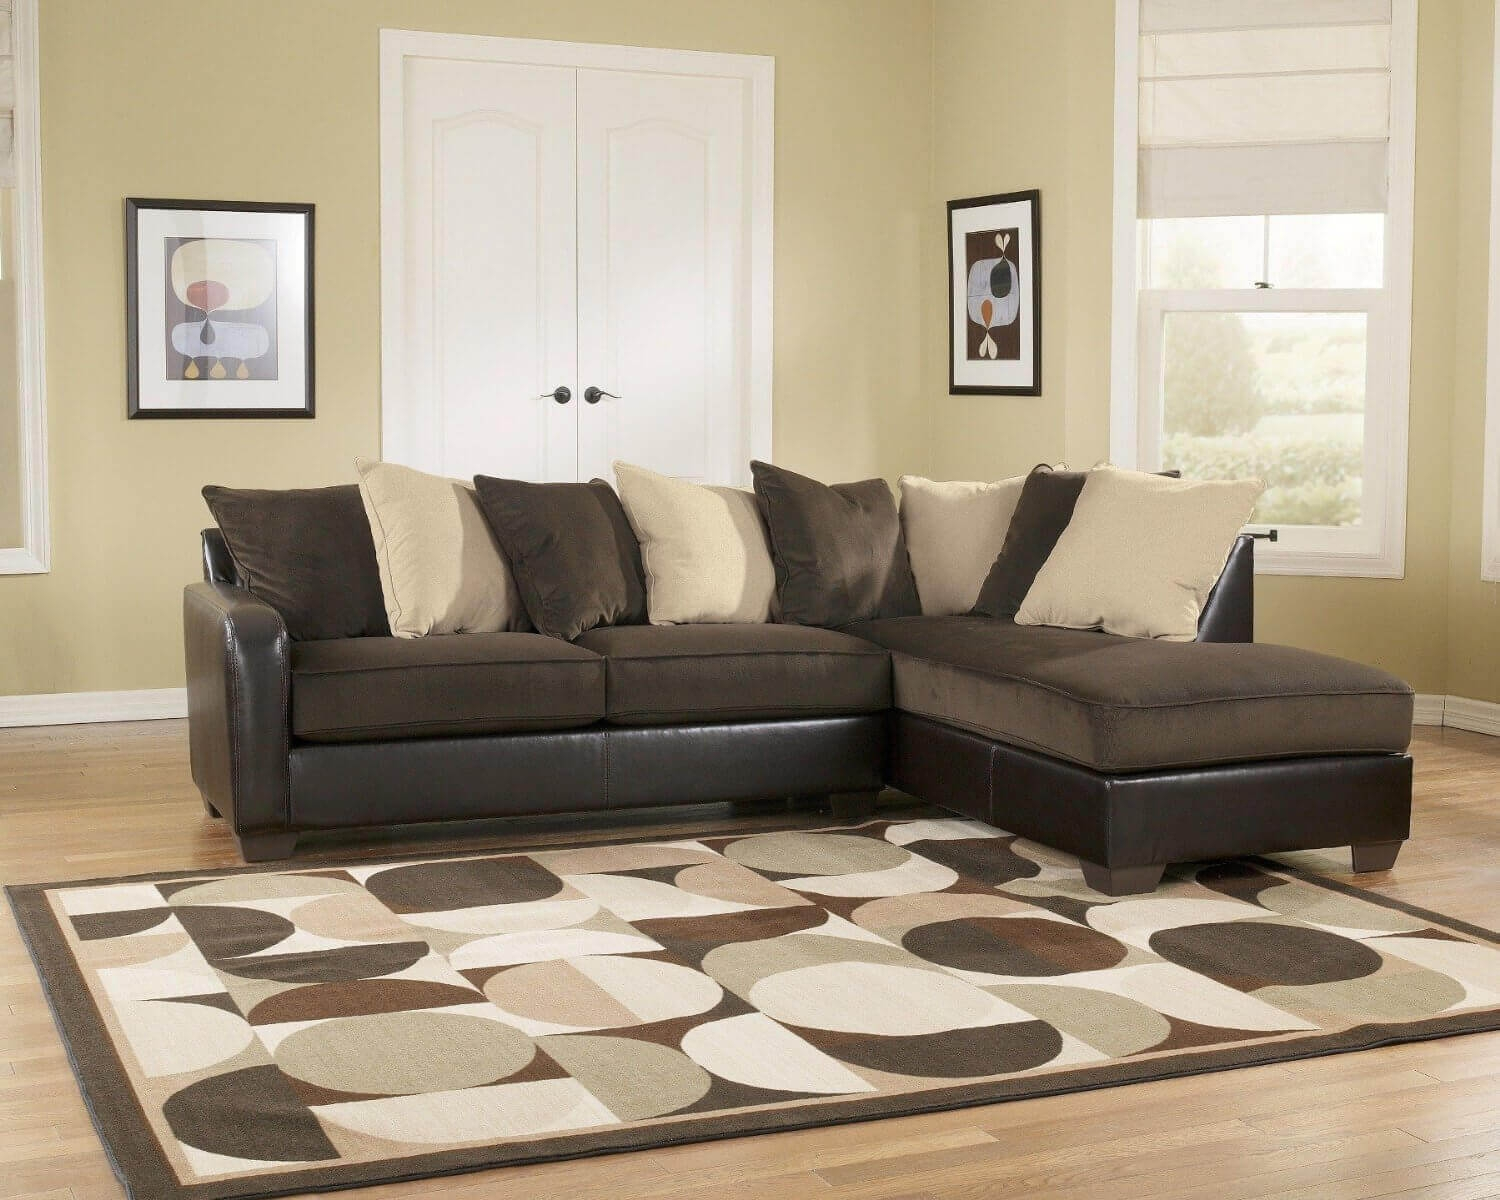 100 Beautiful Sectional Sofas Under 1000 Intended For Durable Sectional Sofa (Image 1 of 15)